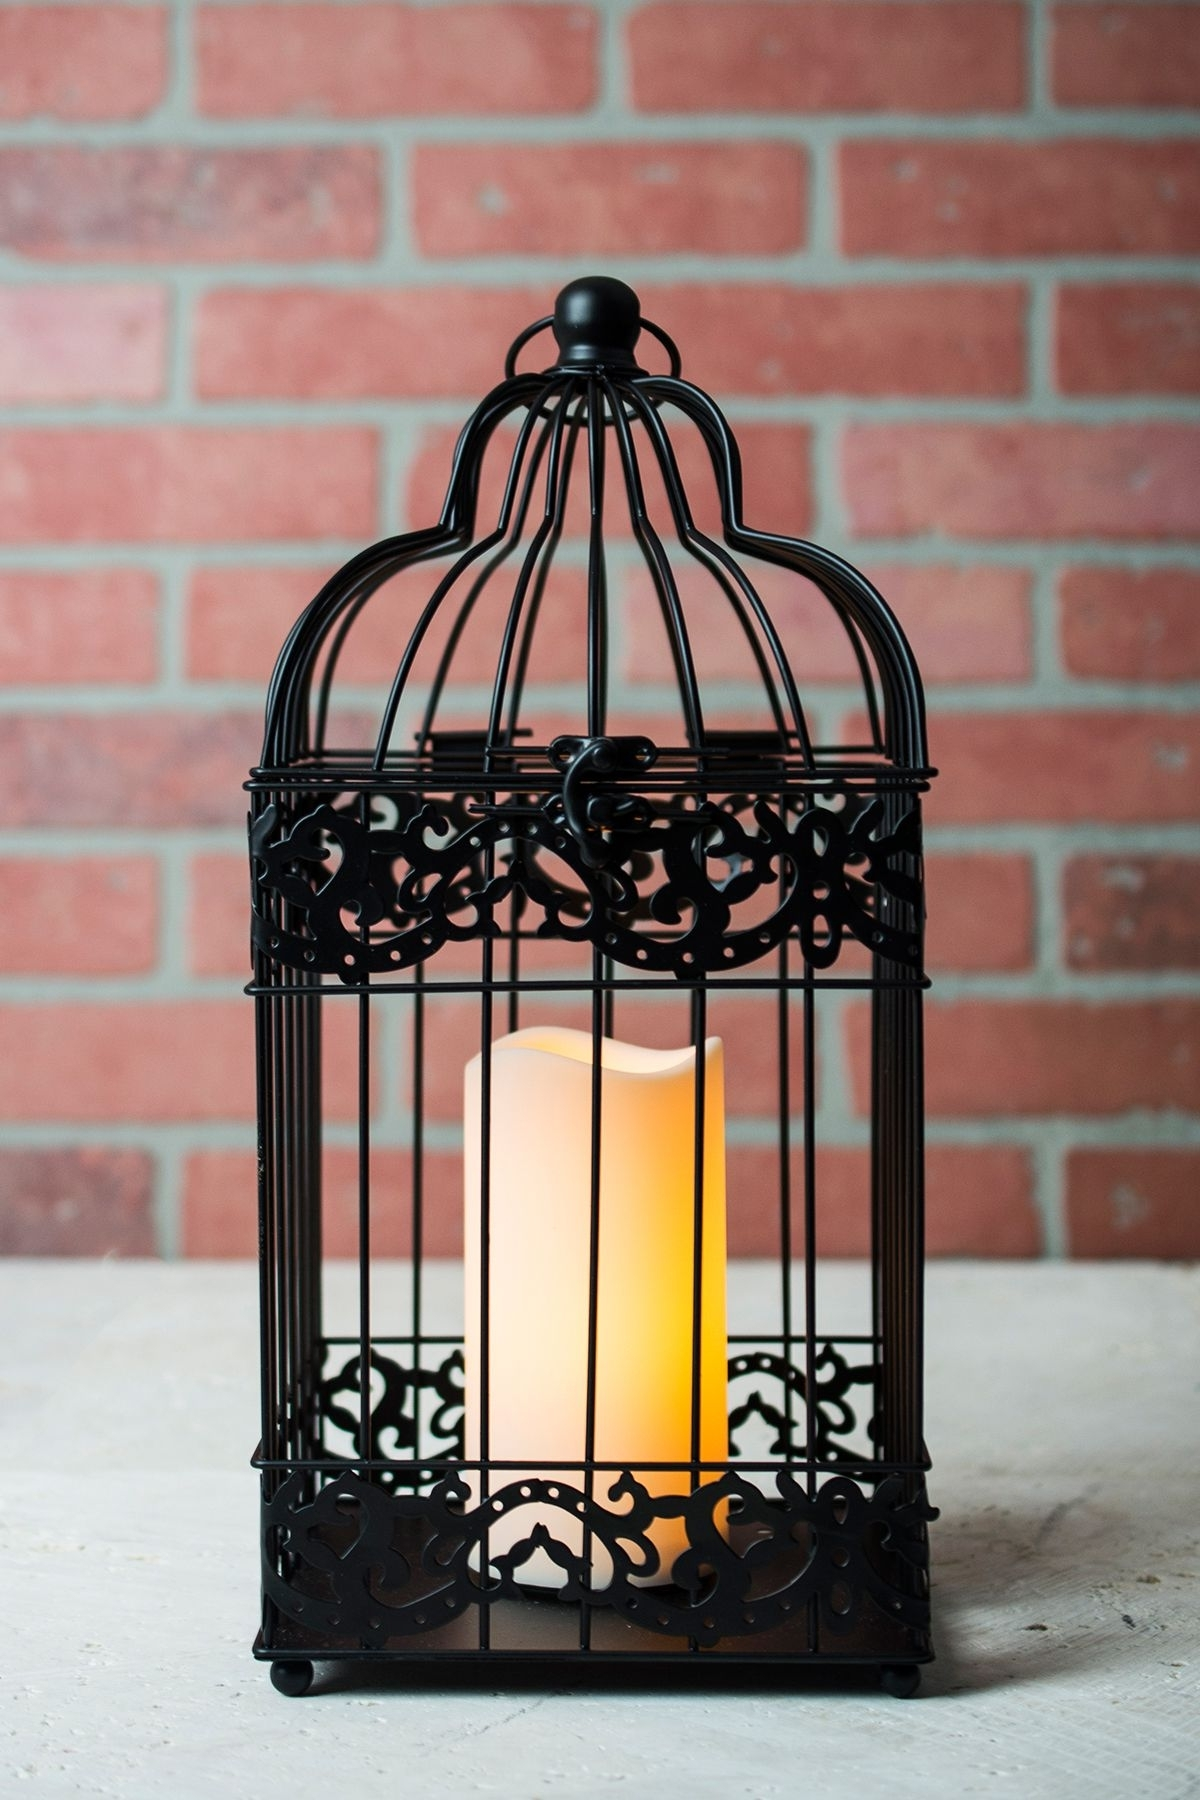 Candle With Regard To Latest Outdoor Lanterns With Battery Candles (View 3 of 20)